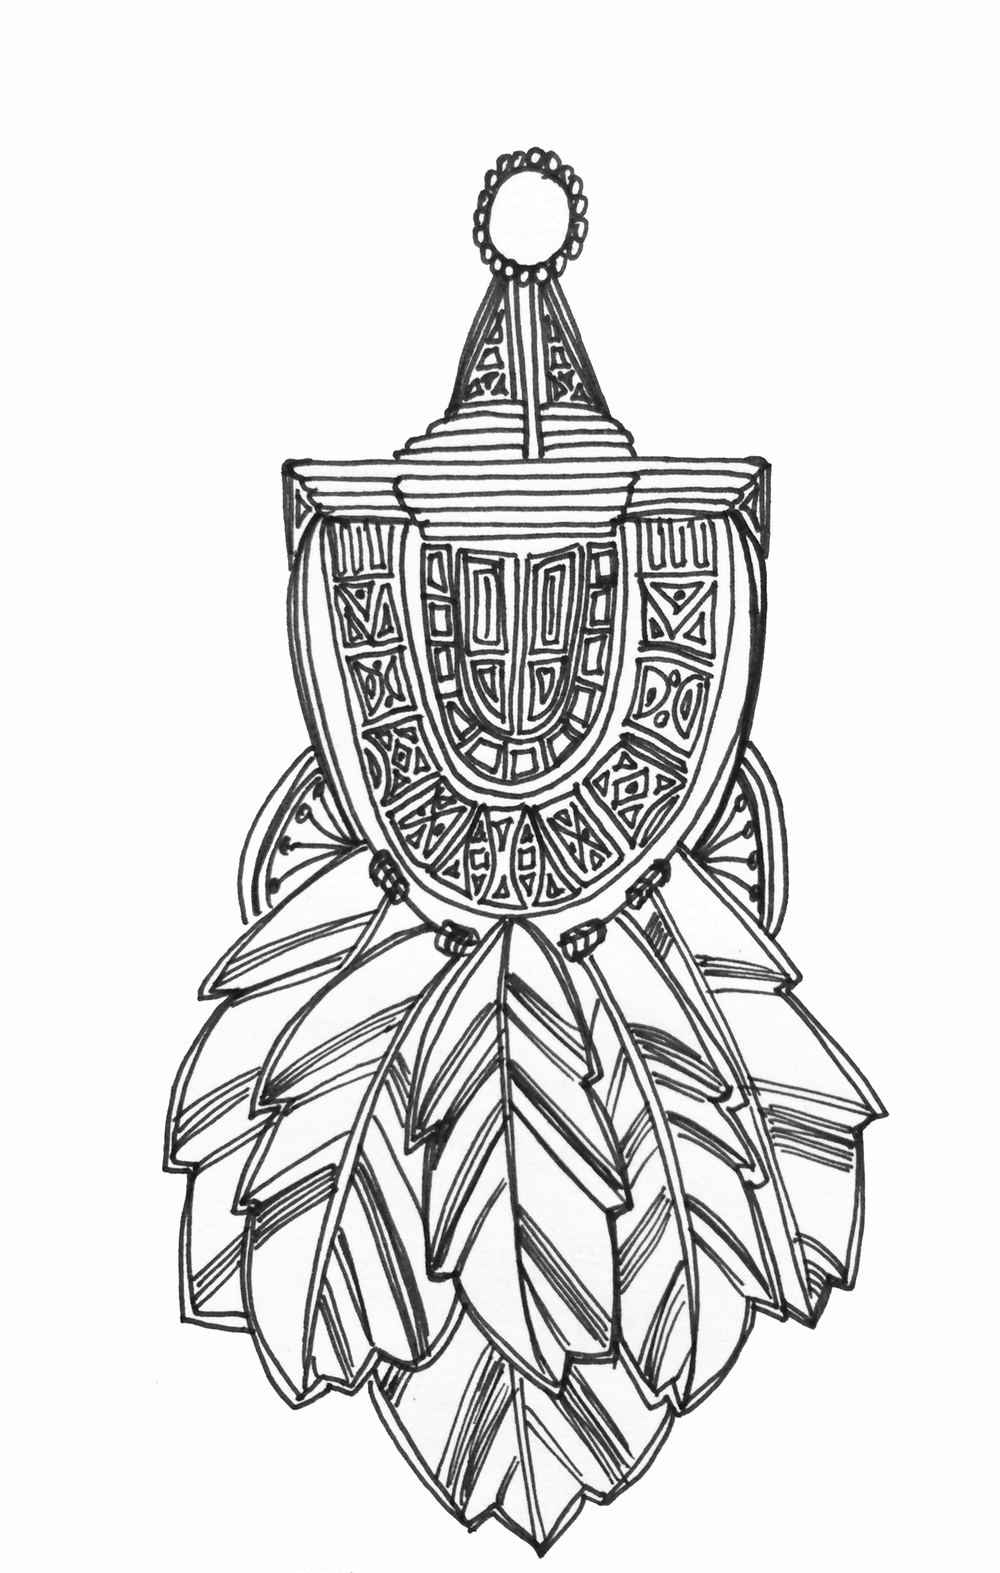 Triabl earring illustration.jpg